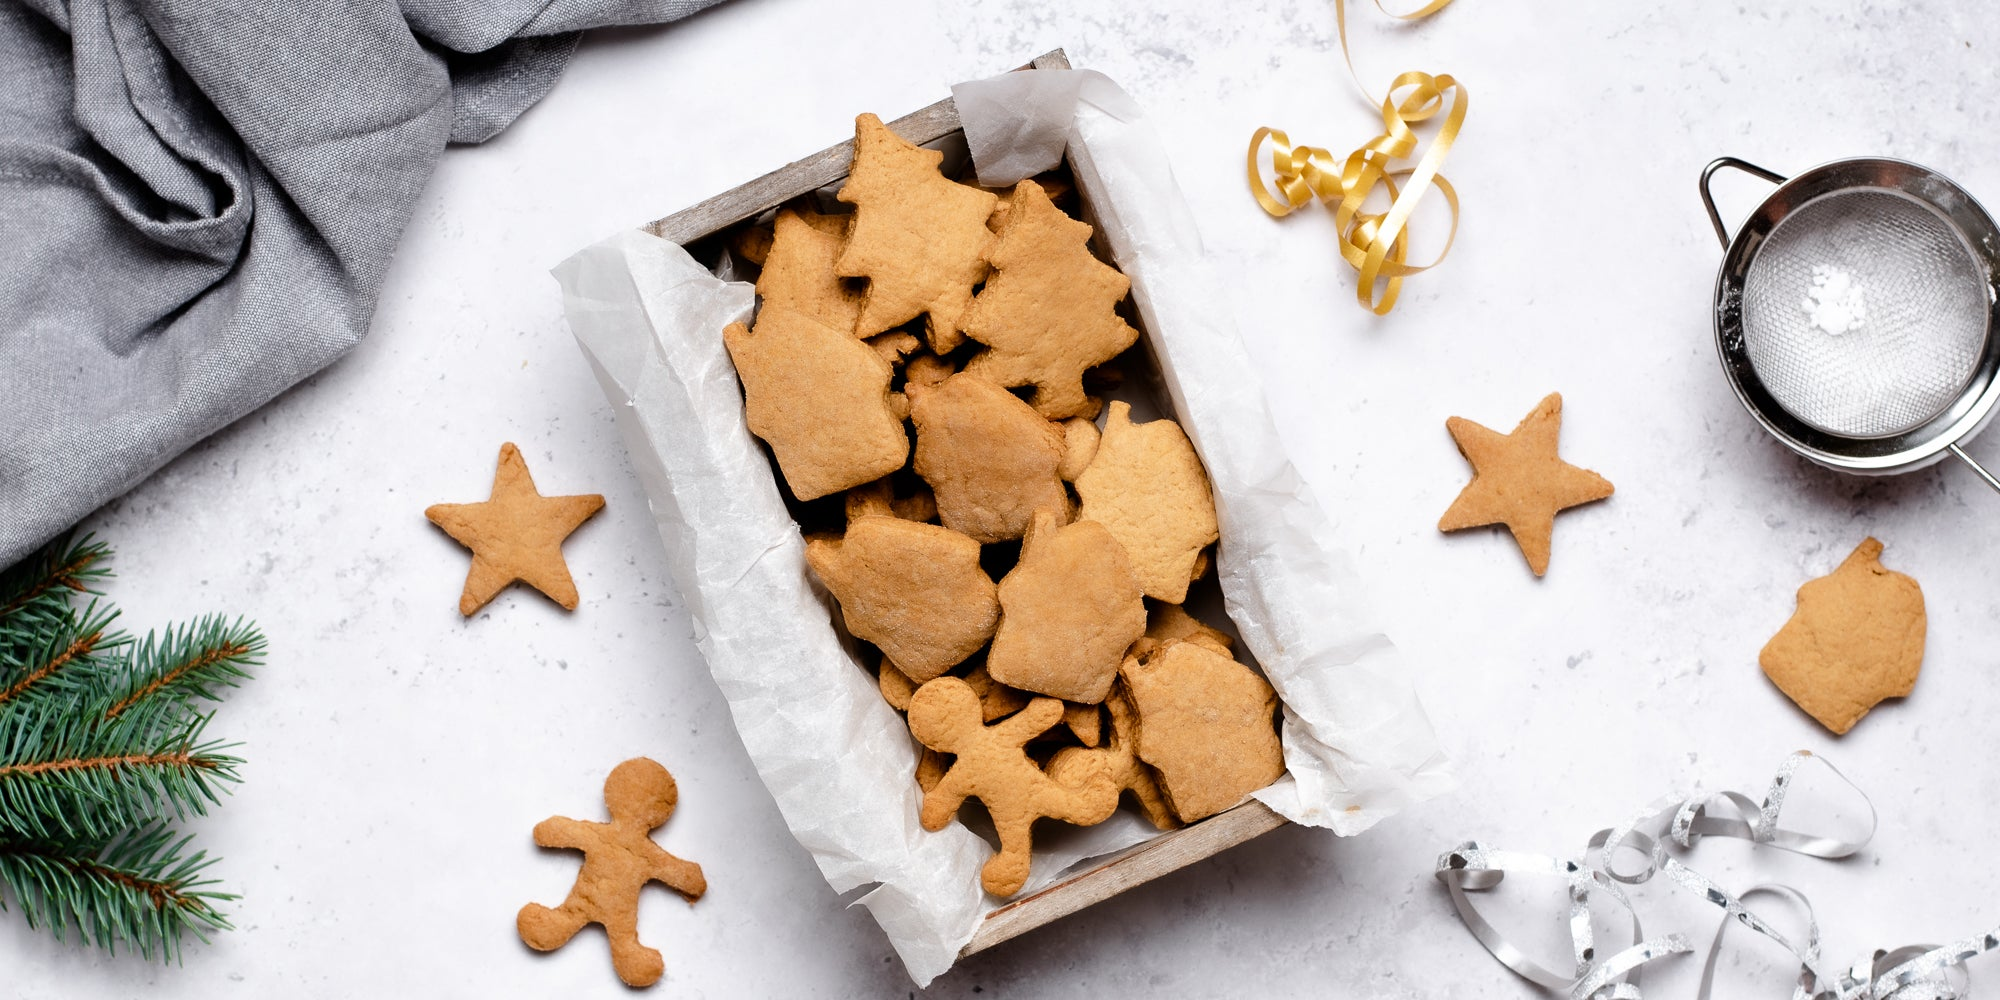 Top down view of vegan gingerbread men and stars in a box